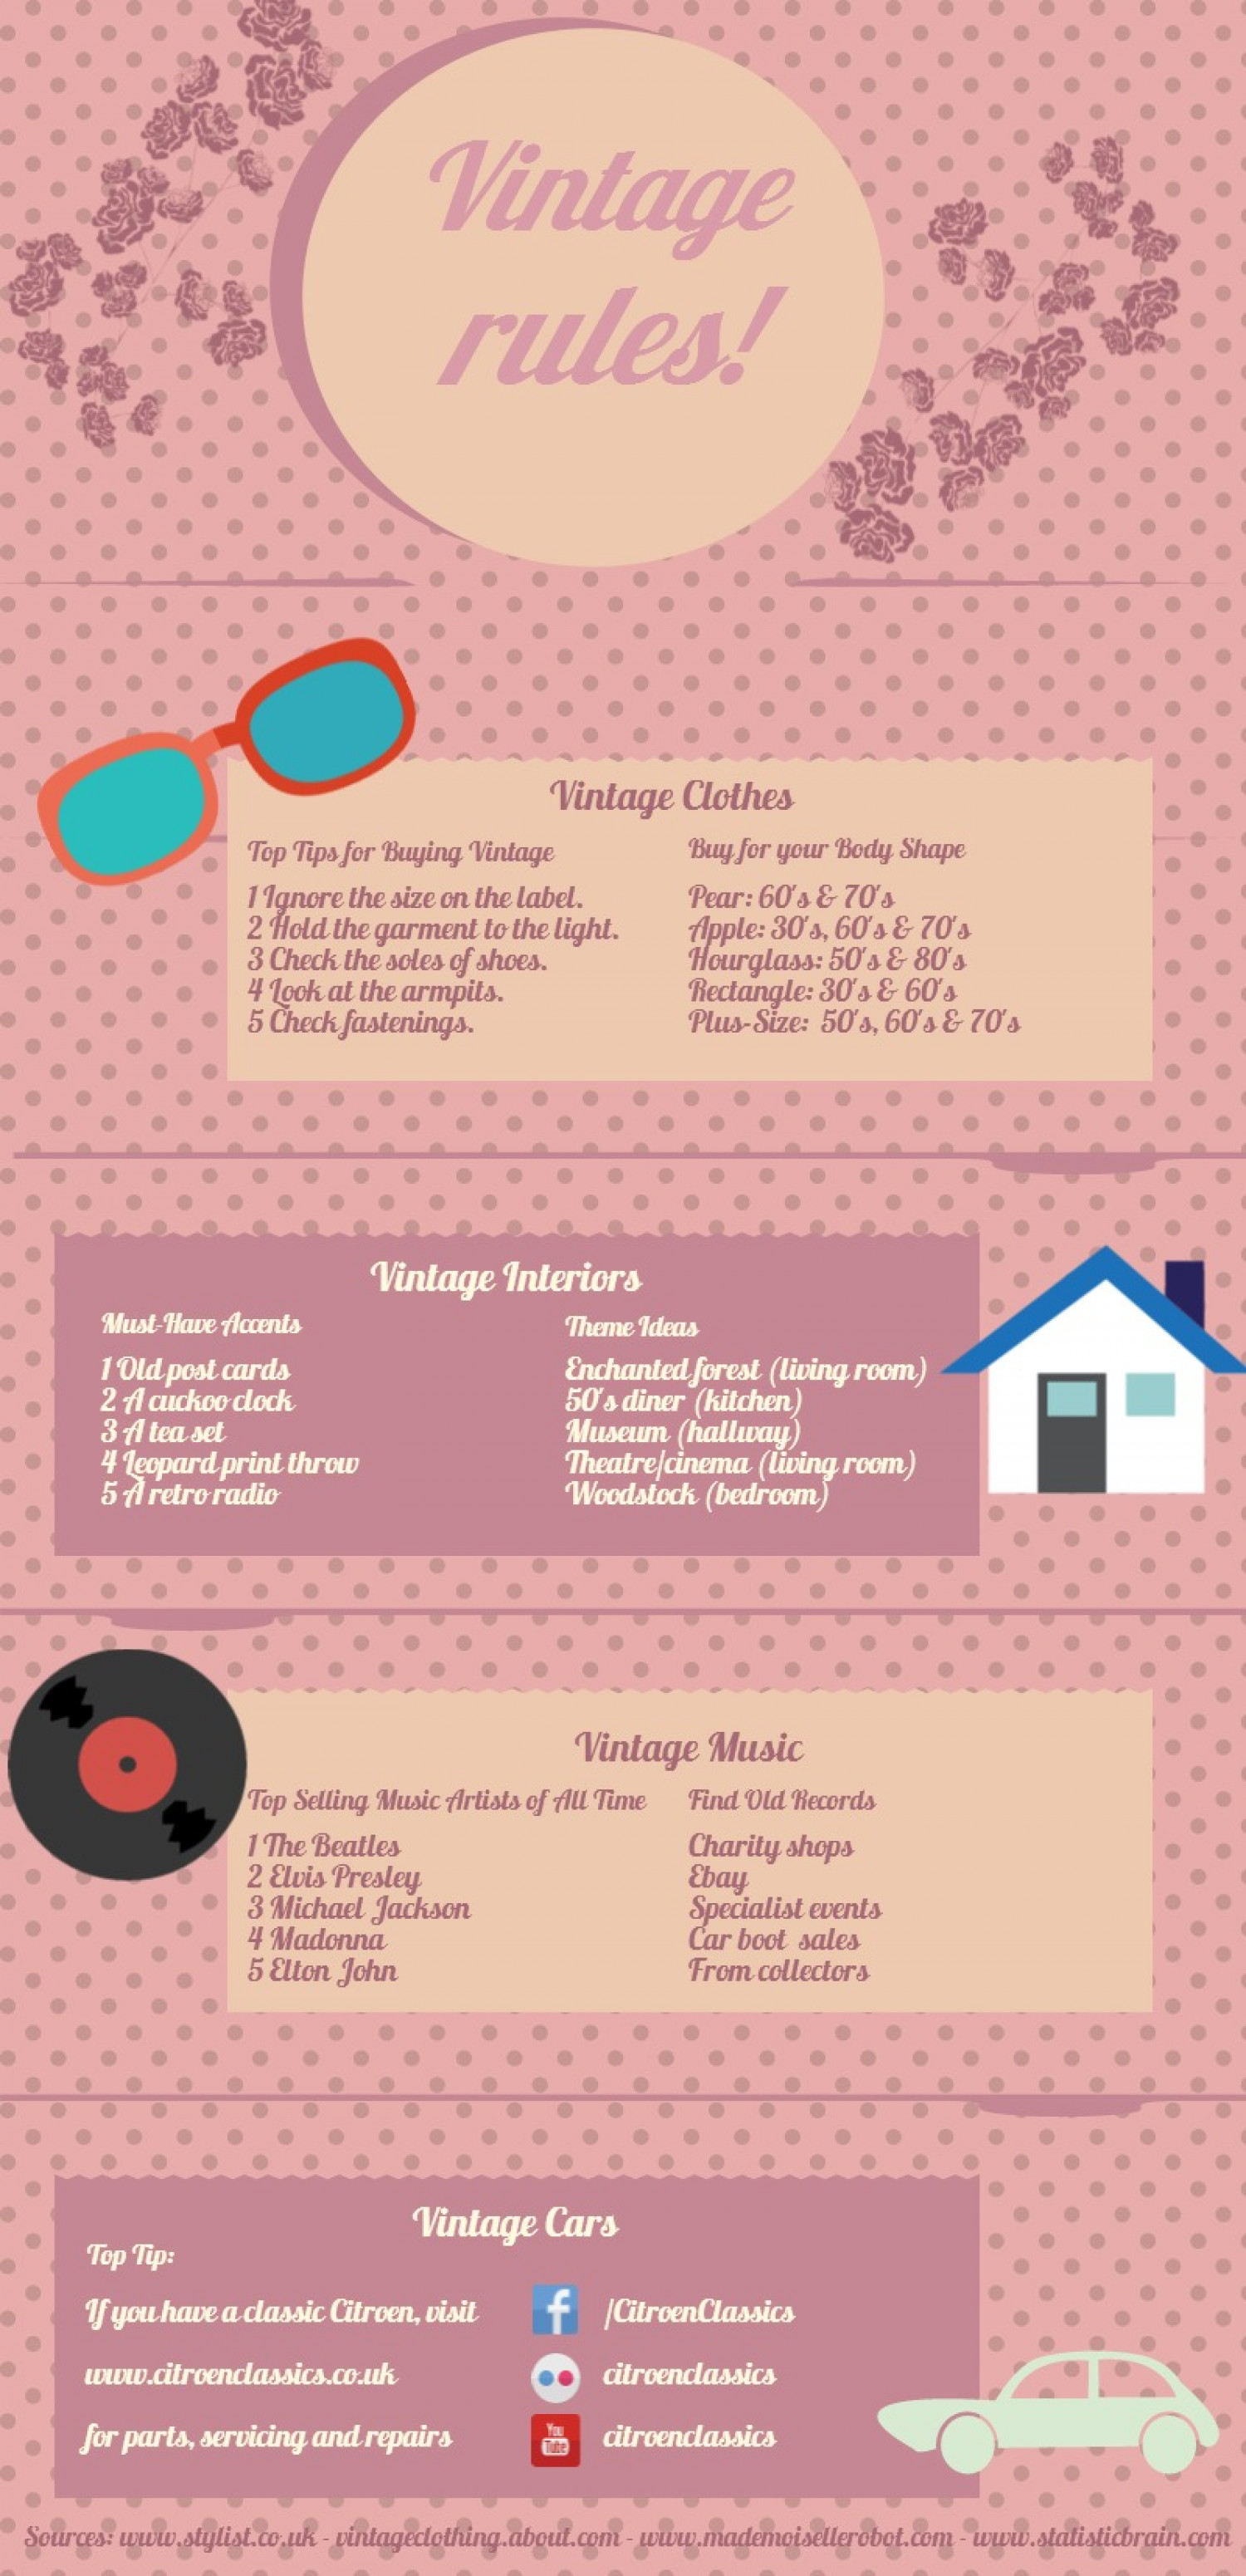 Vintage Rules Infographic